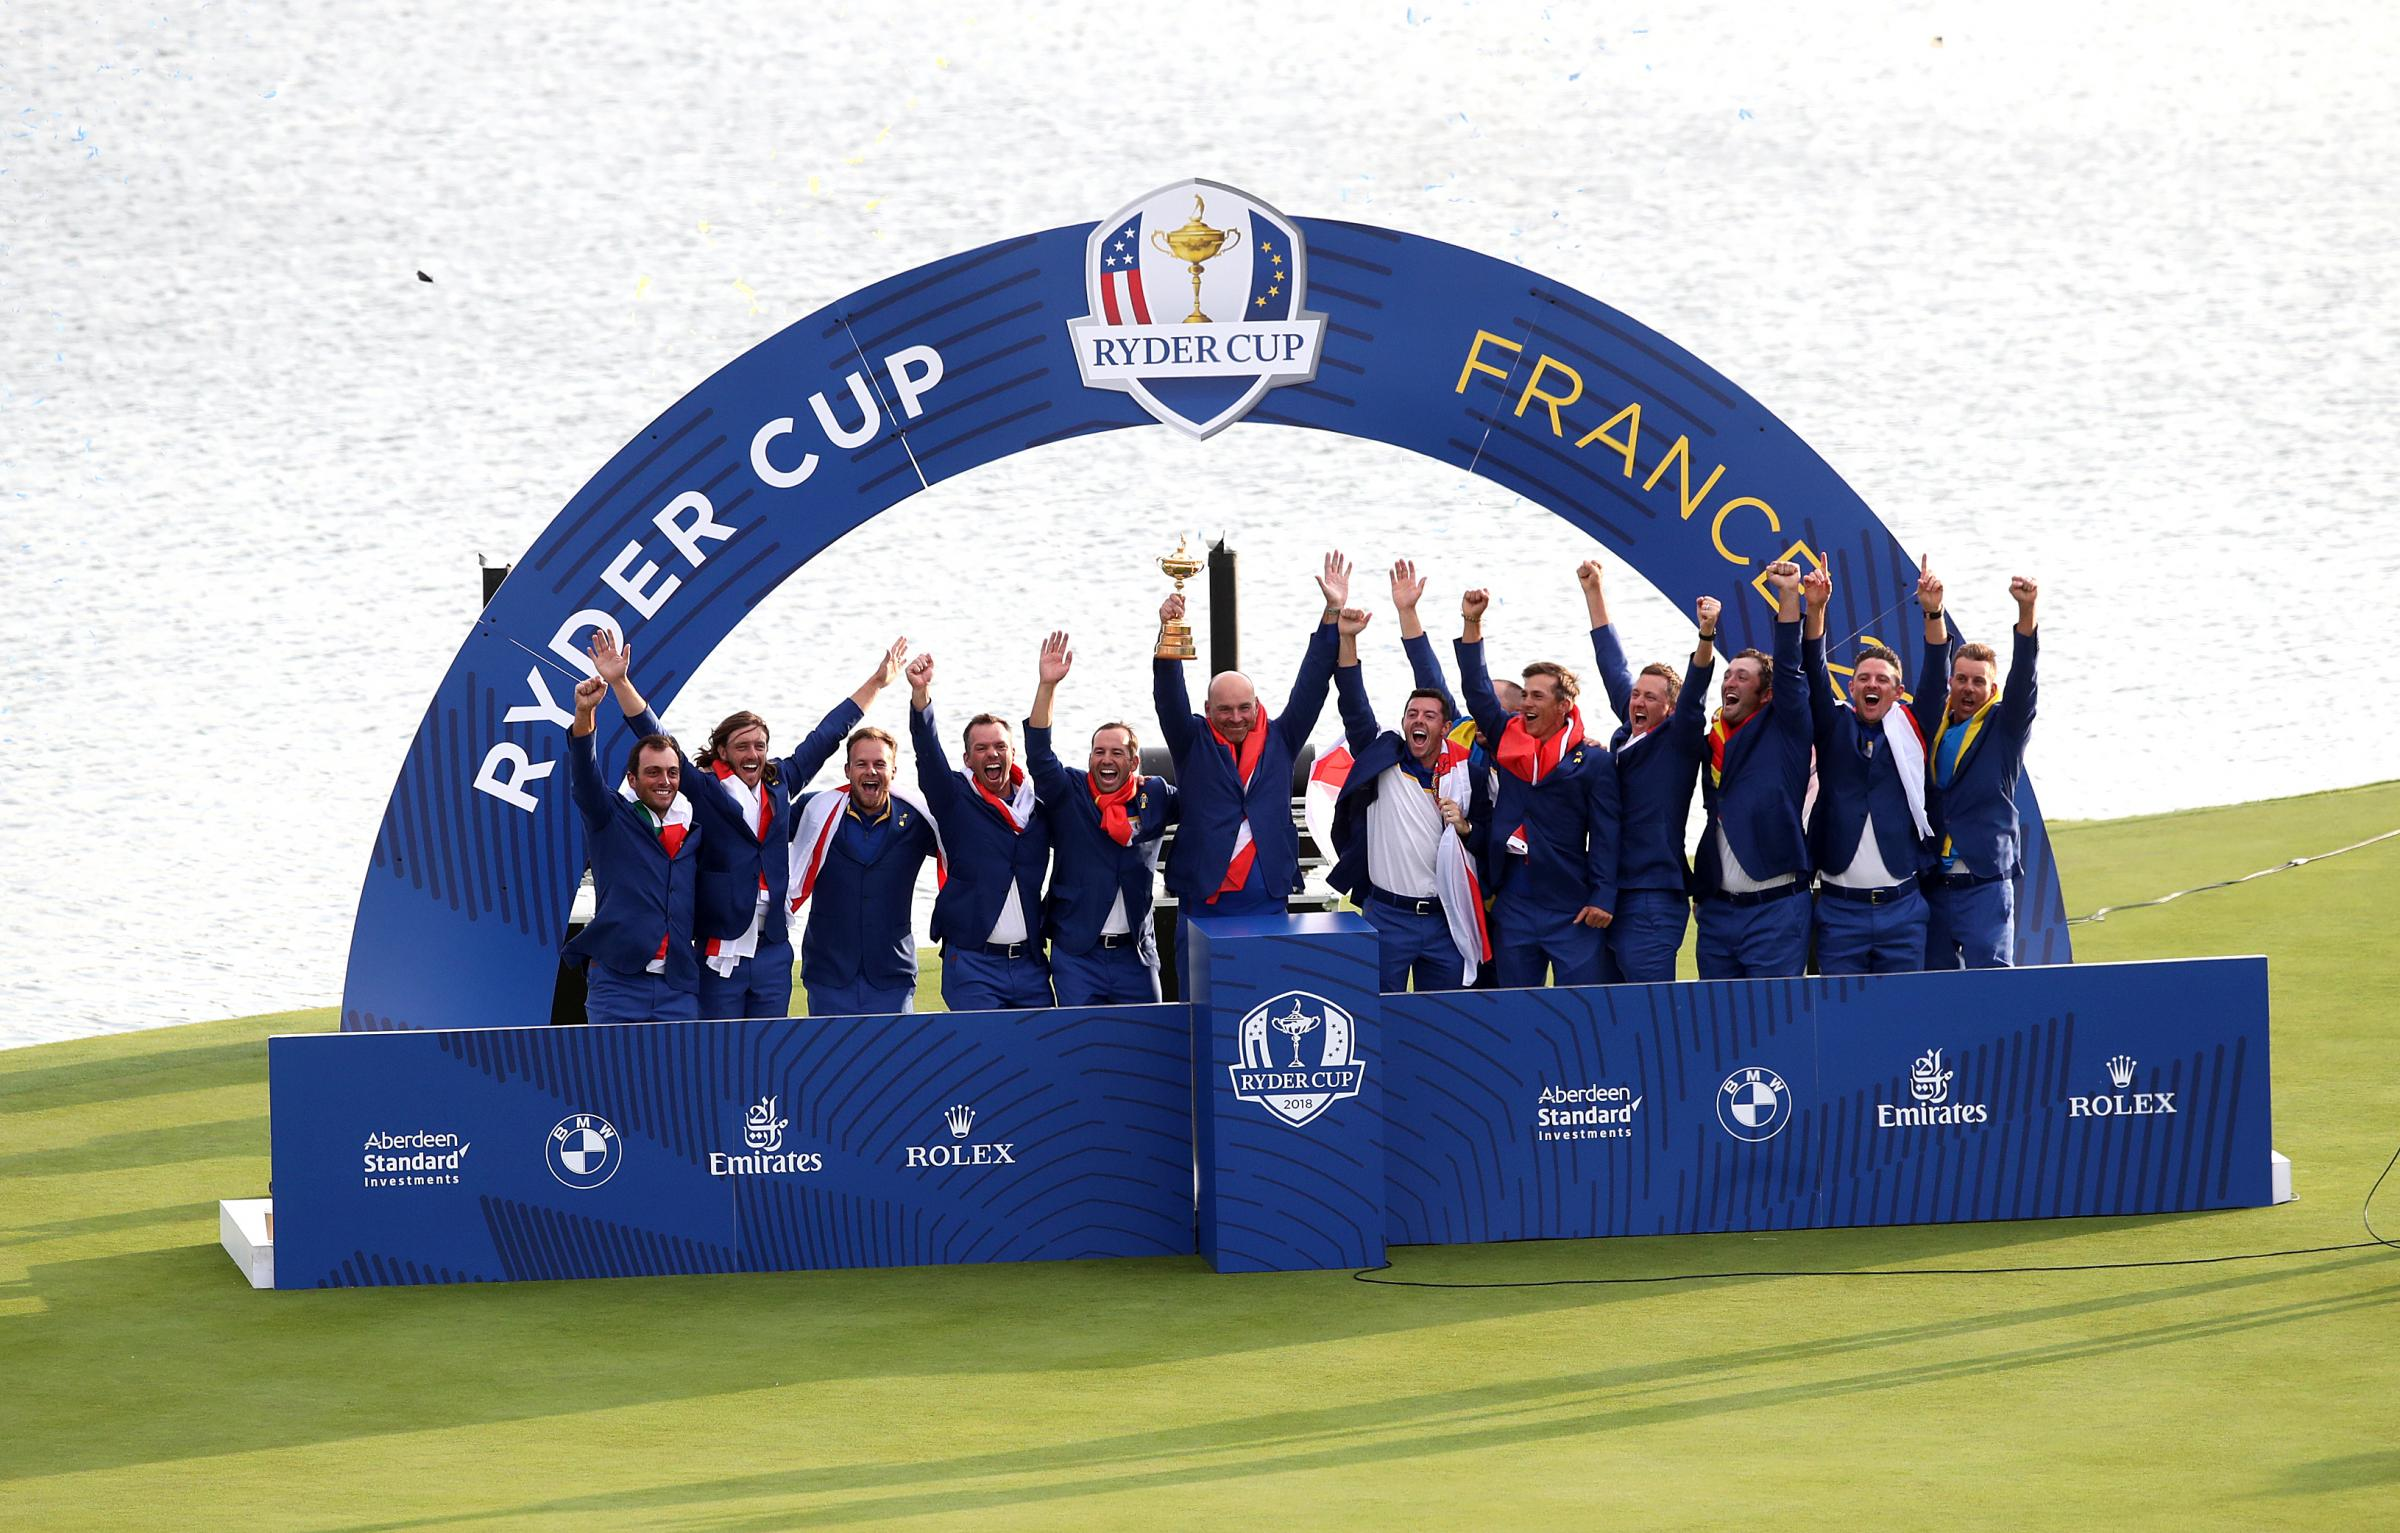 Triumphant - Team Europe celebrate after clinching the Ryder Cup at Le Golf National